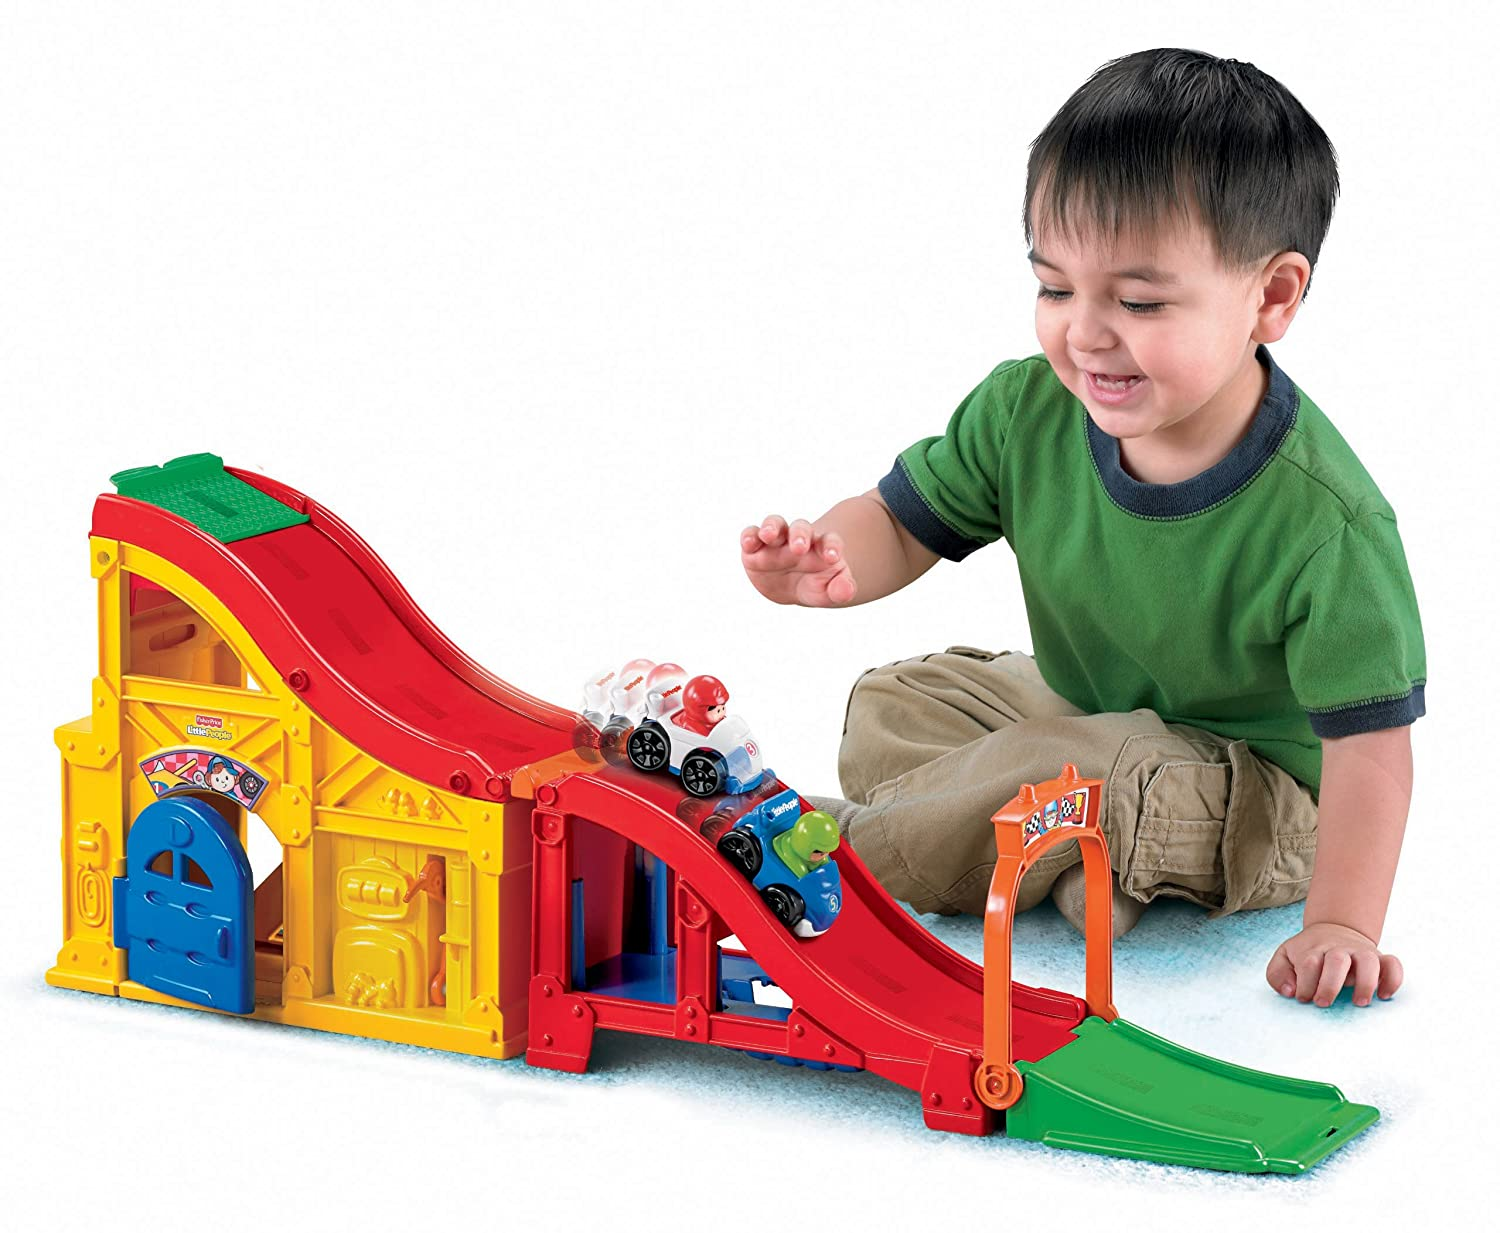 Best Little People Toys : Best toys for year old boys ⋆ perfect gift store